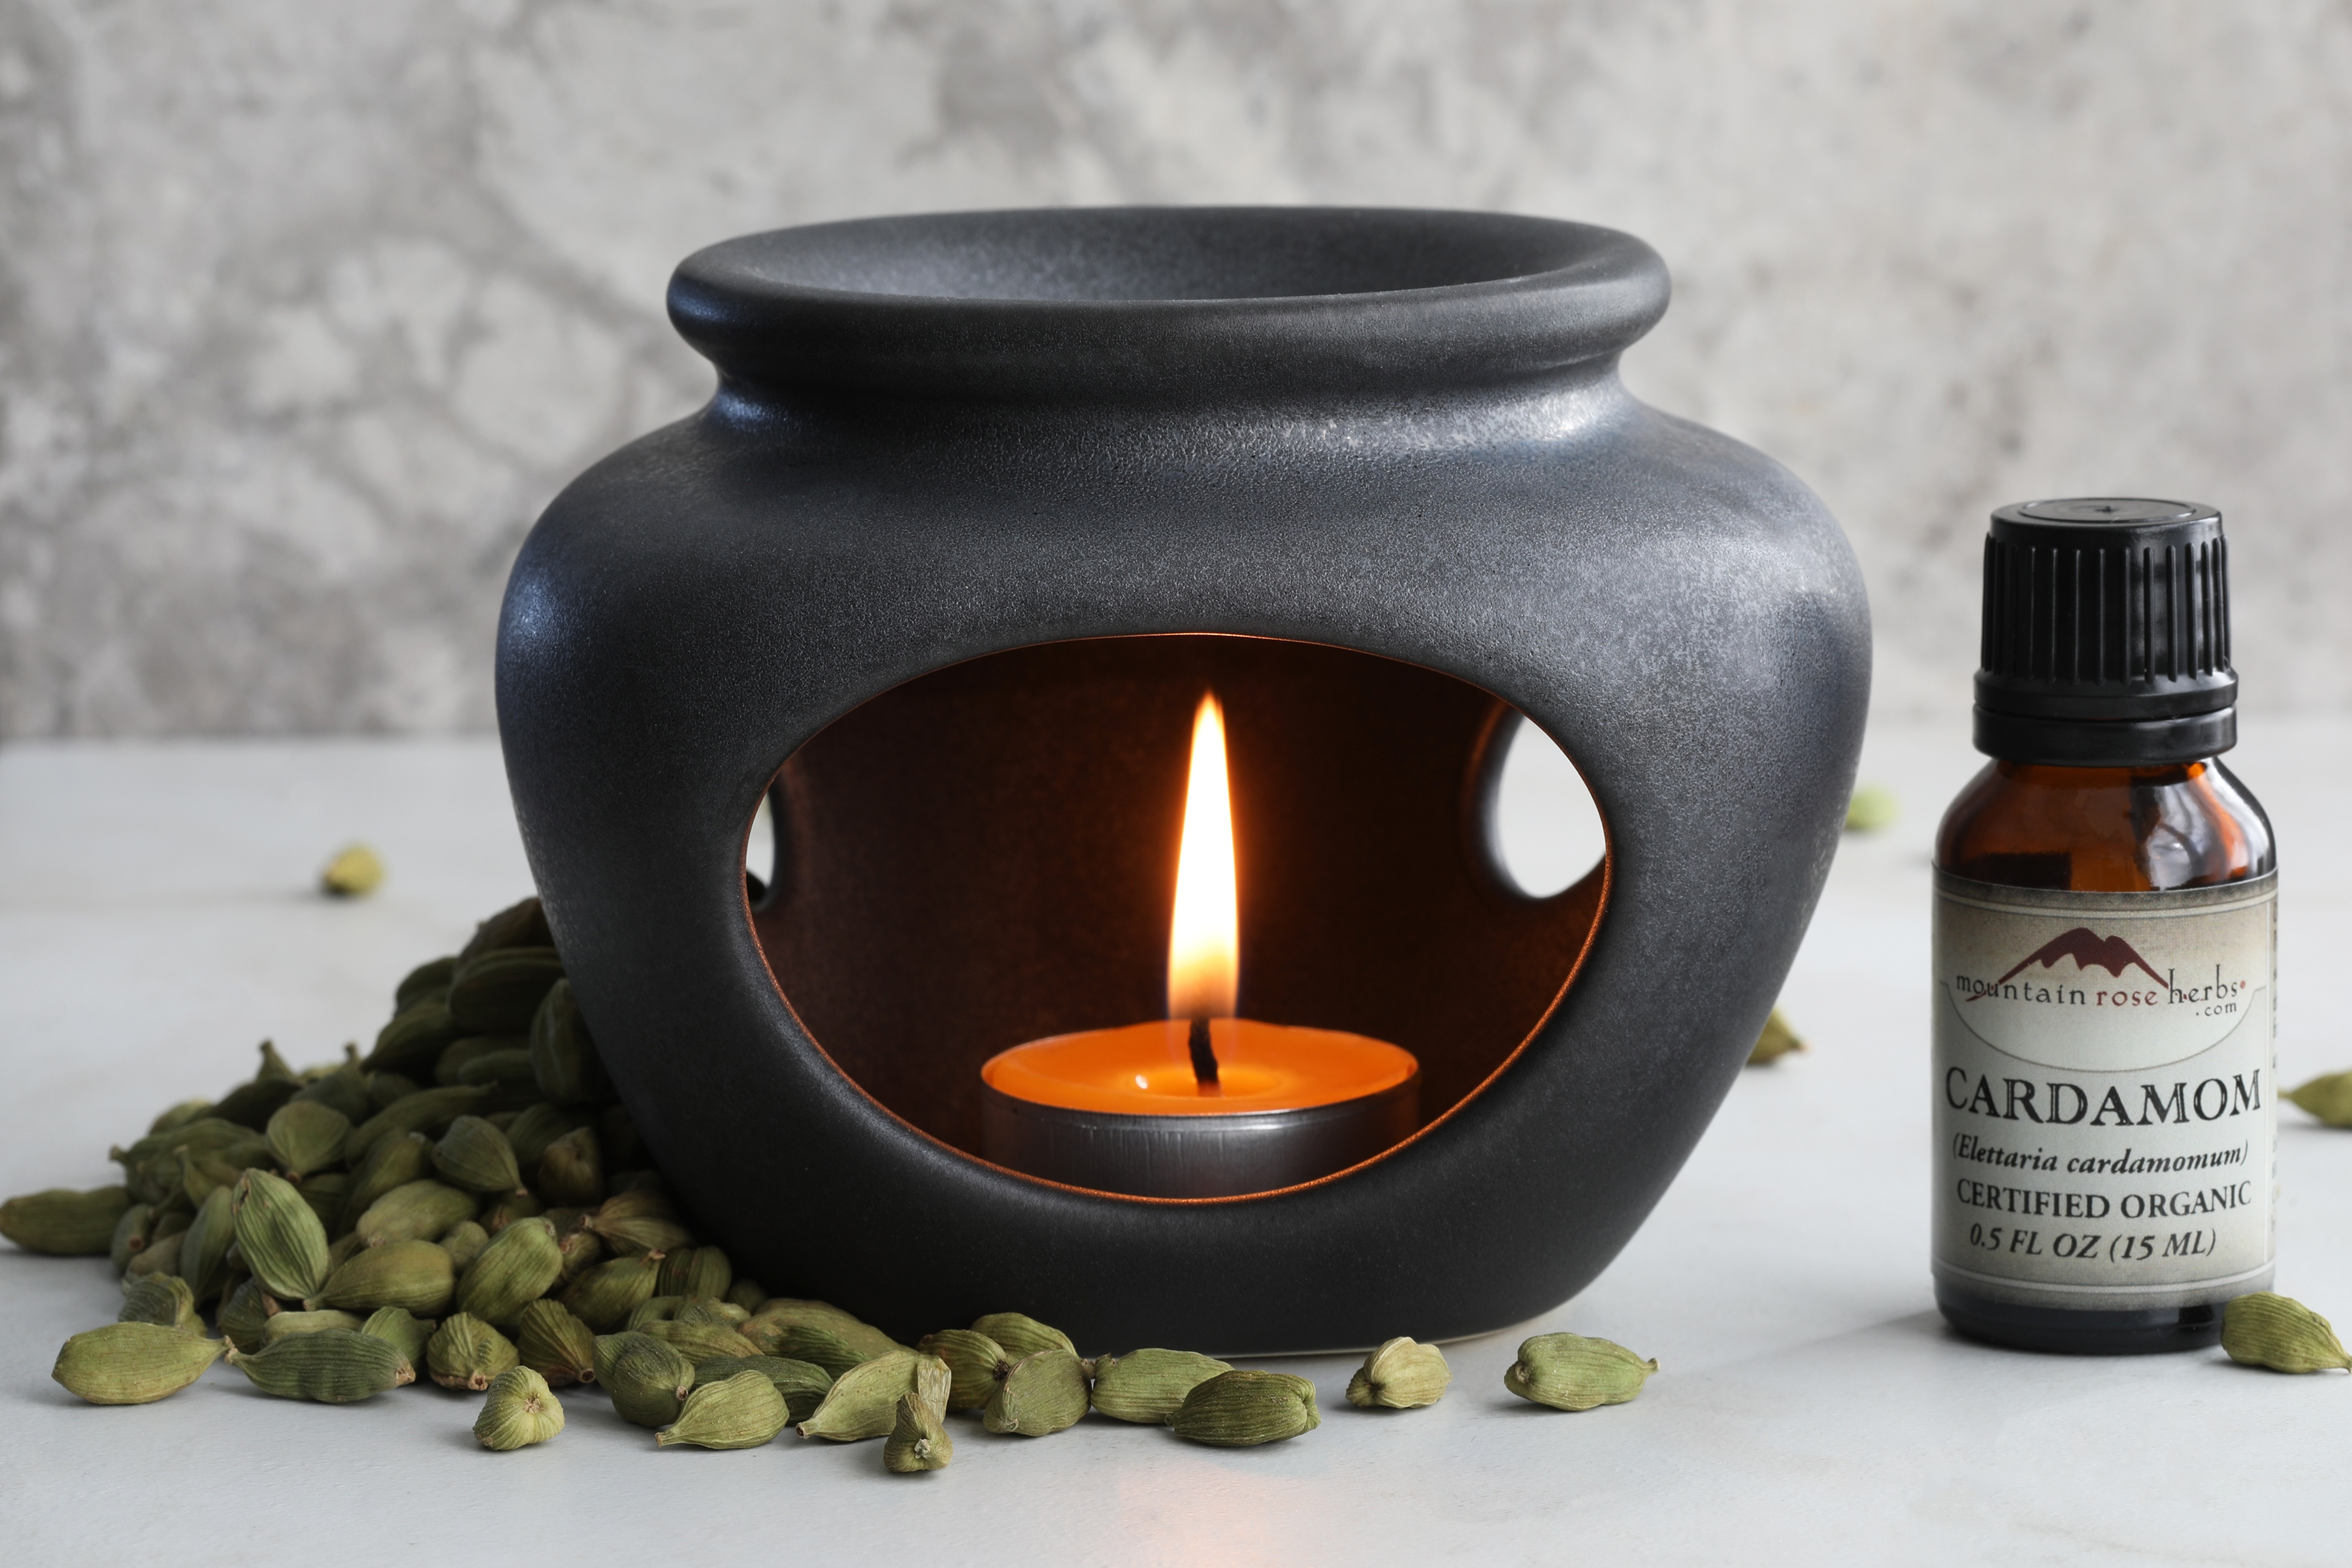 Tea light candle ceramic diffuser with lit candle and cardamom essential oil sitting next to cardamom pods